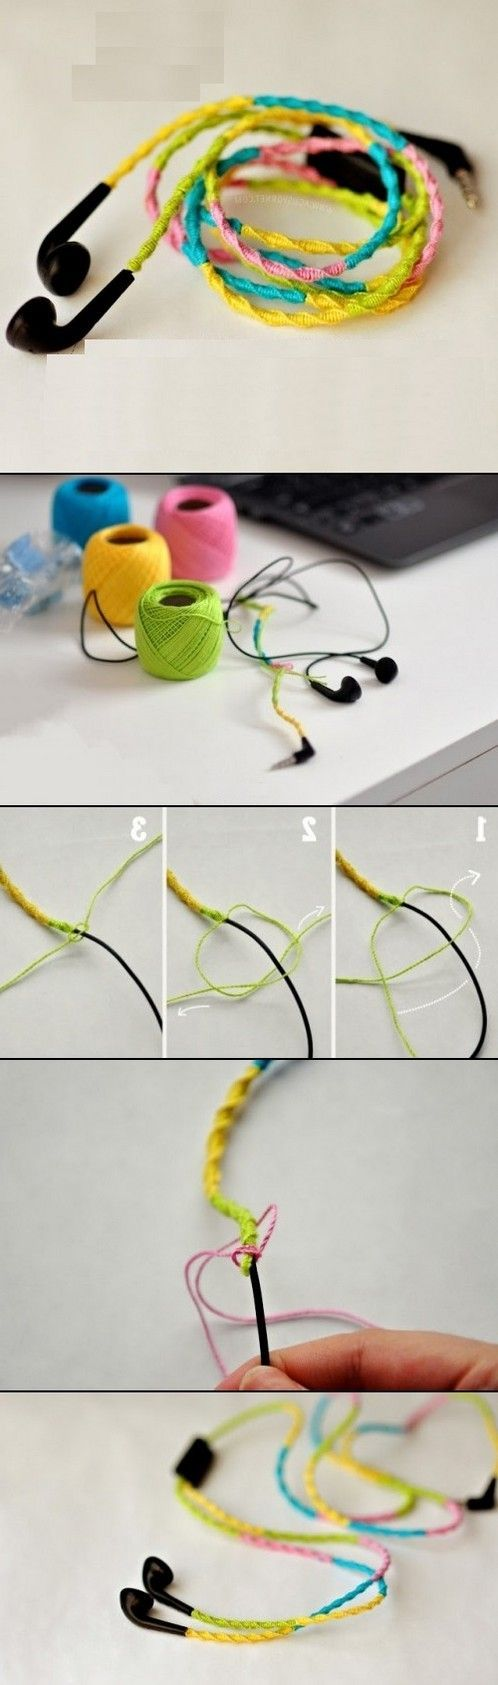 Interesting DIY Projects for your Gadgets: